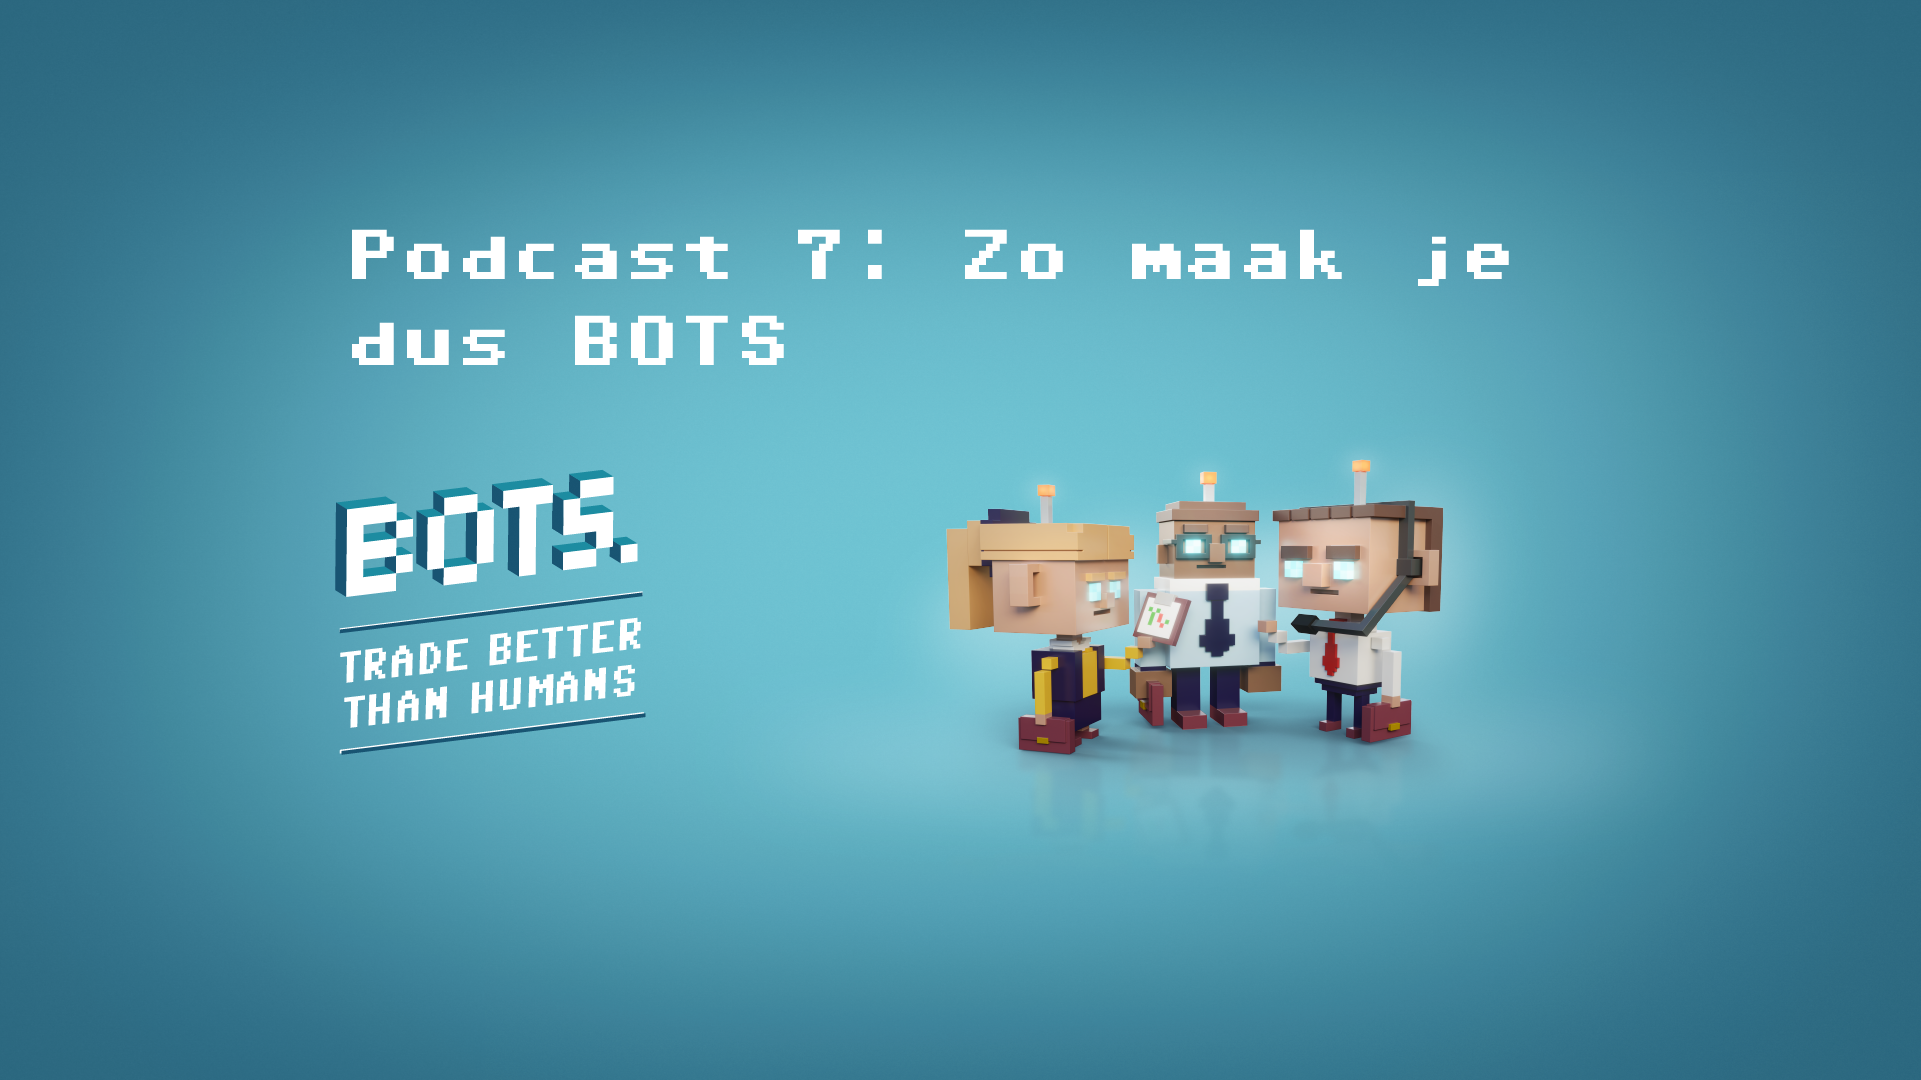 Podcast 7: So that's how you make BOTS